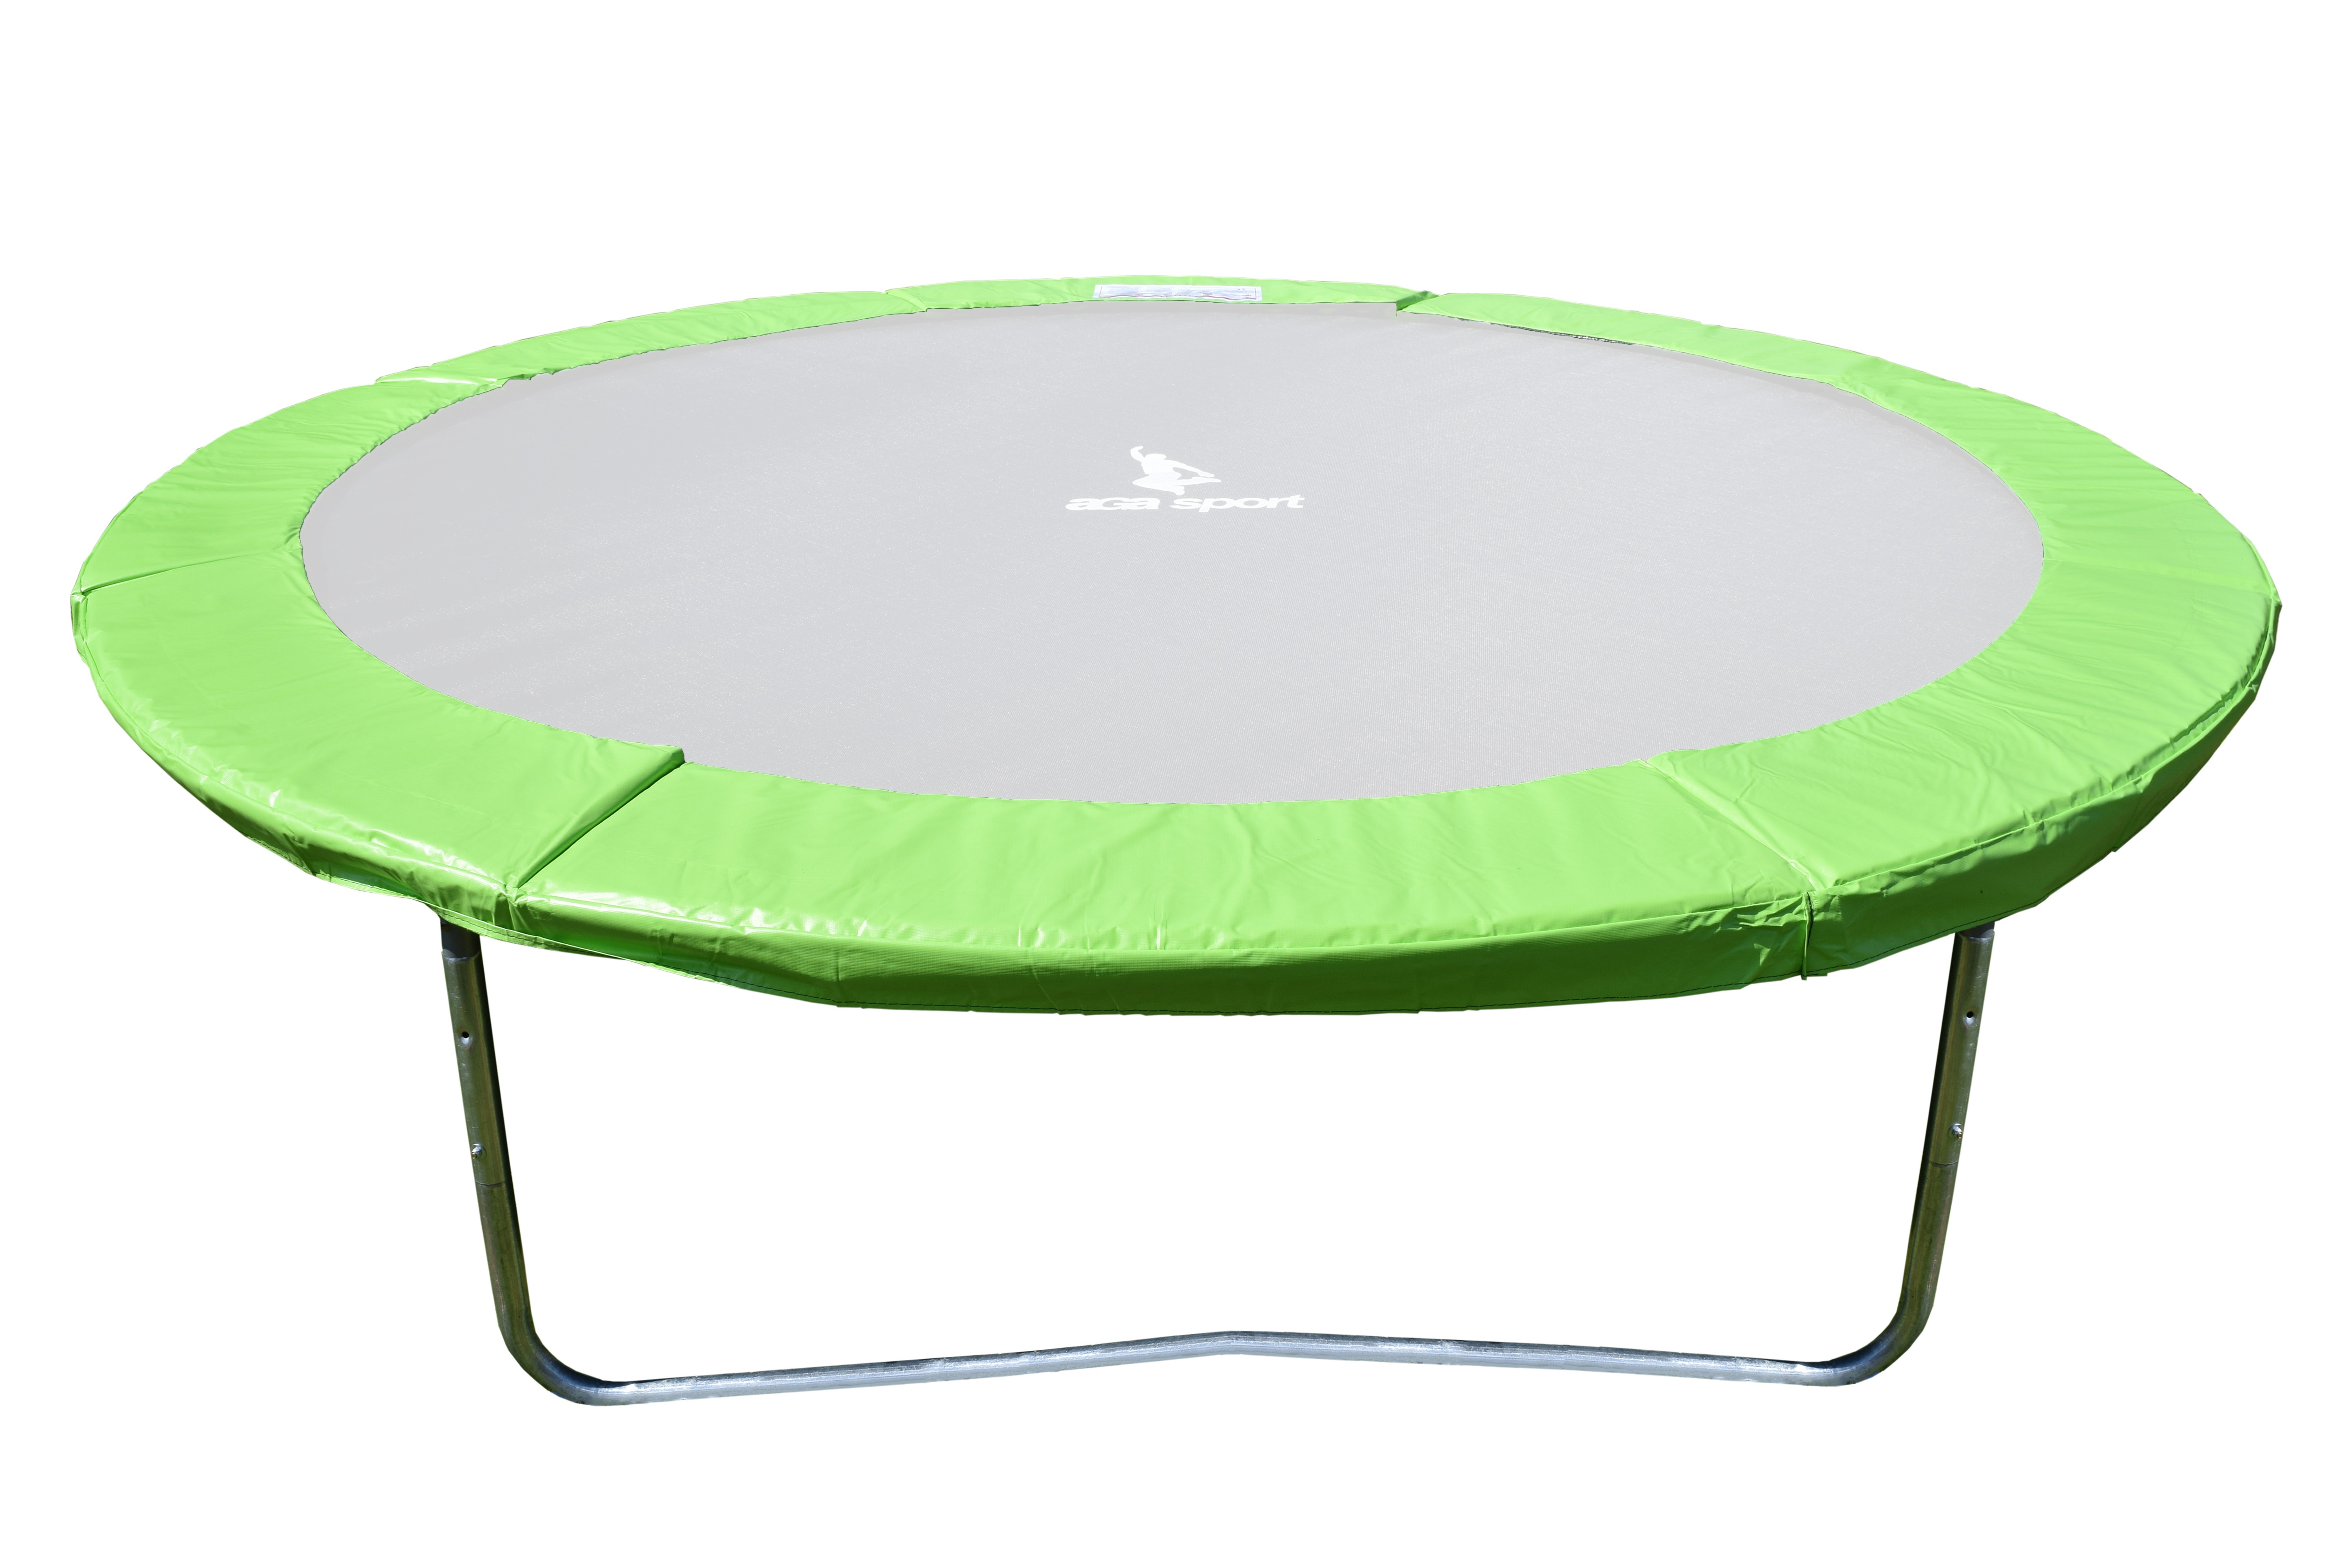 Aga Chránič pružin 275 cm Light Green